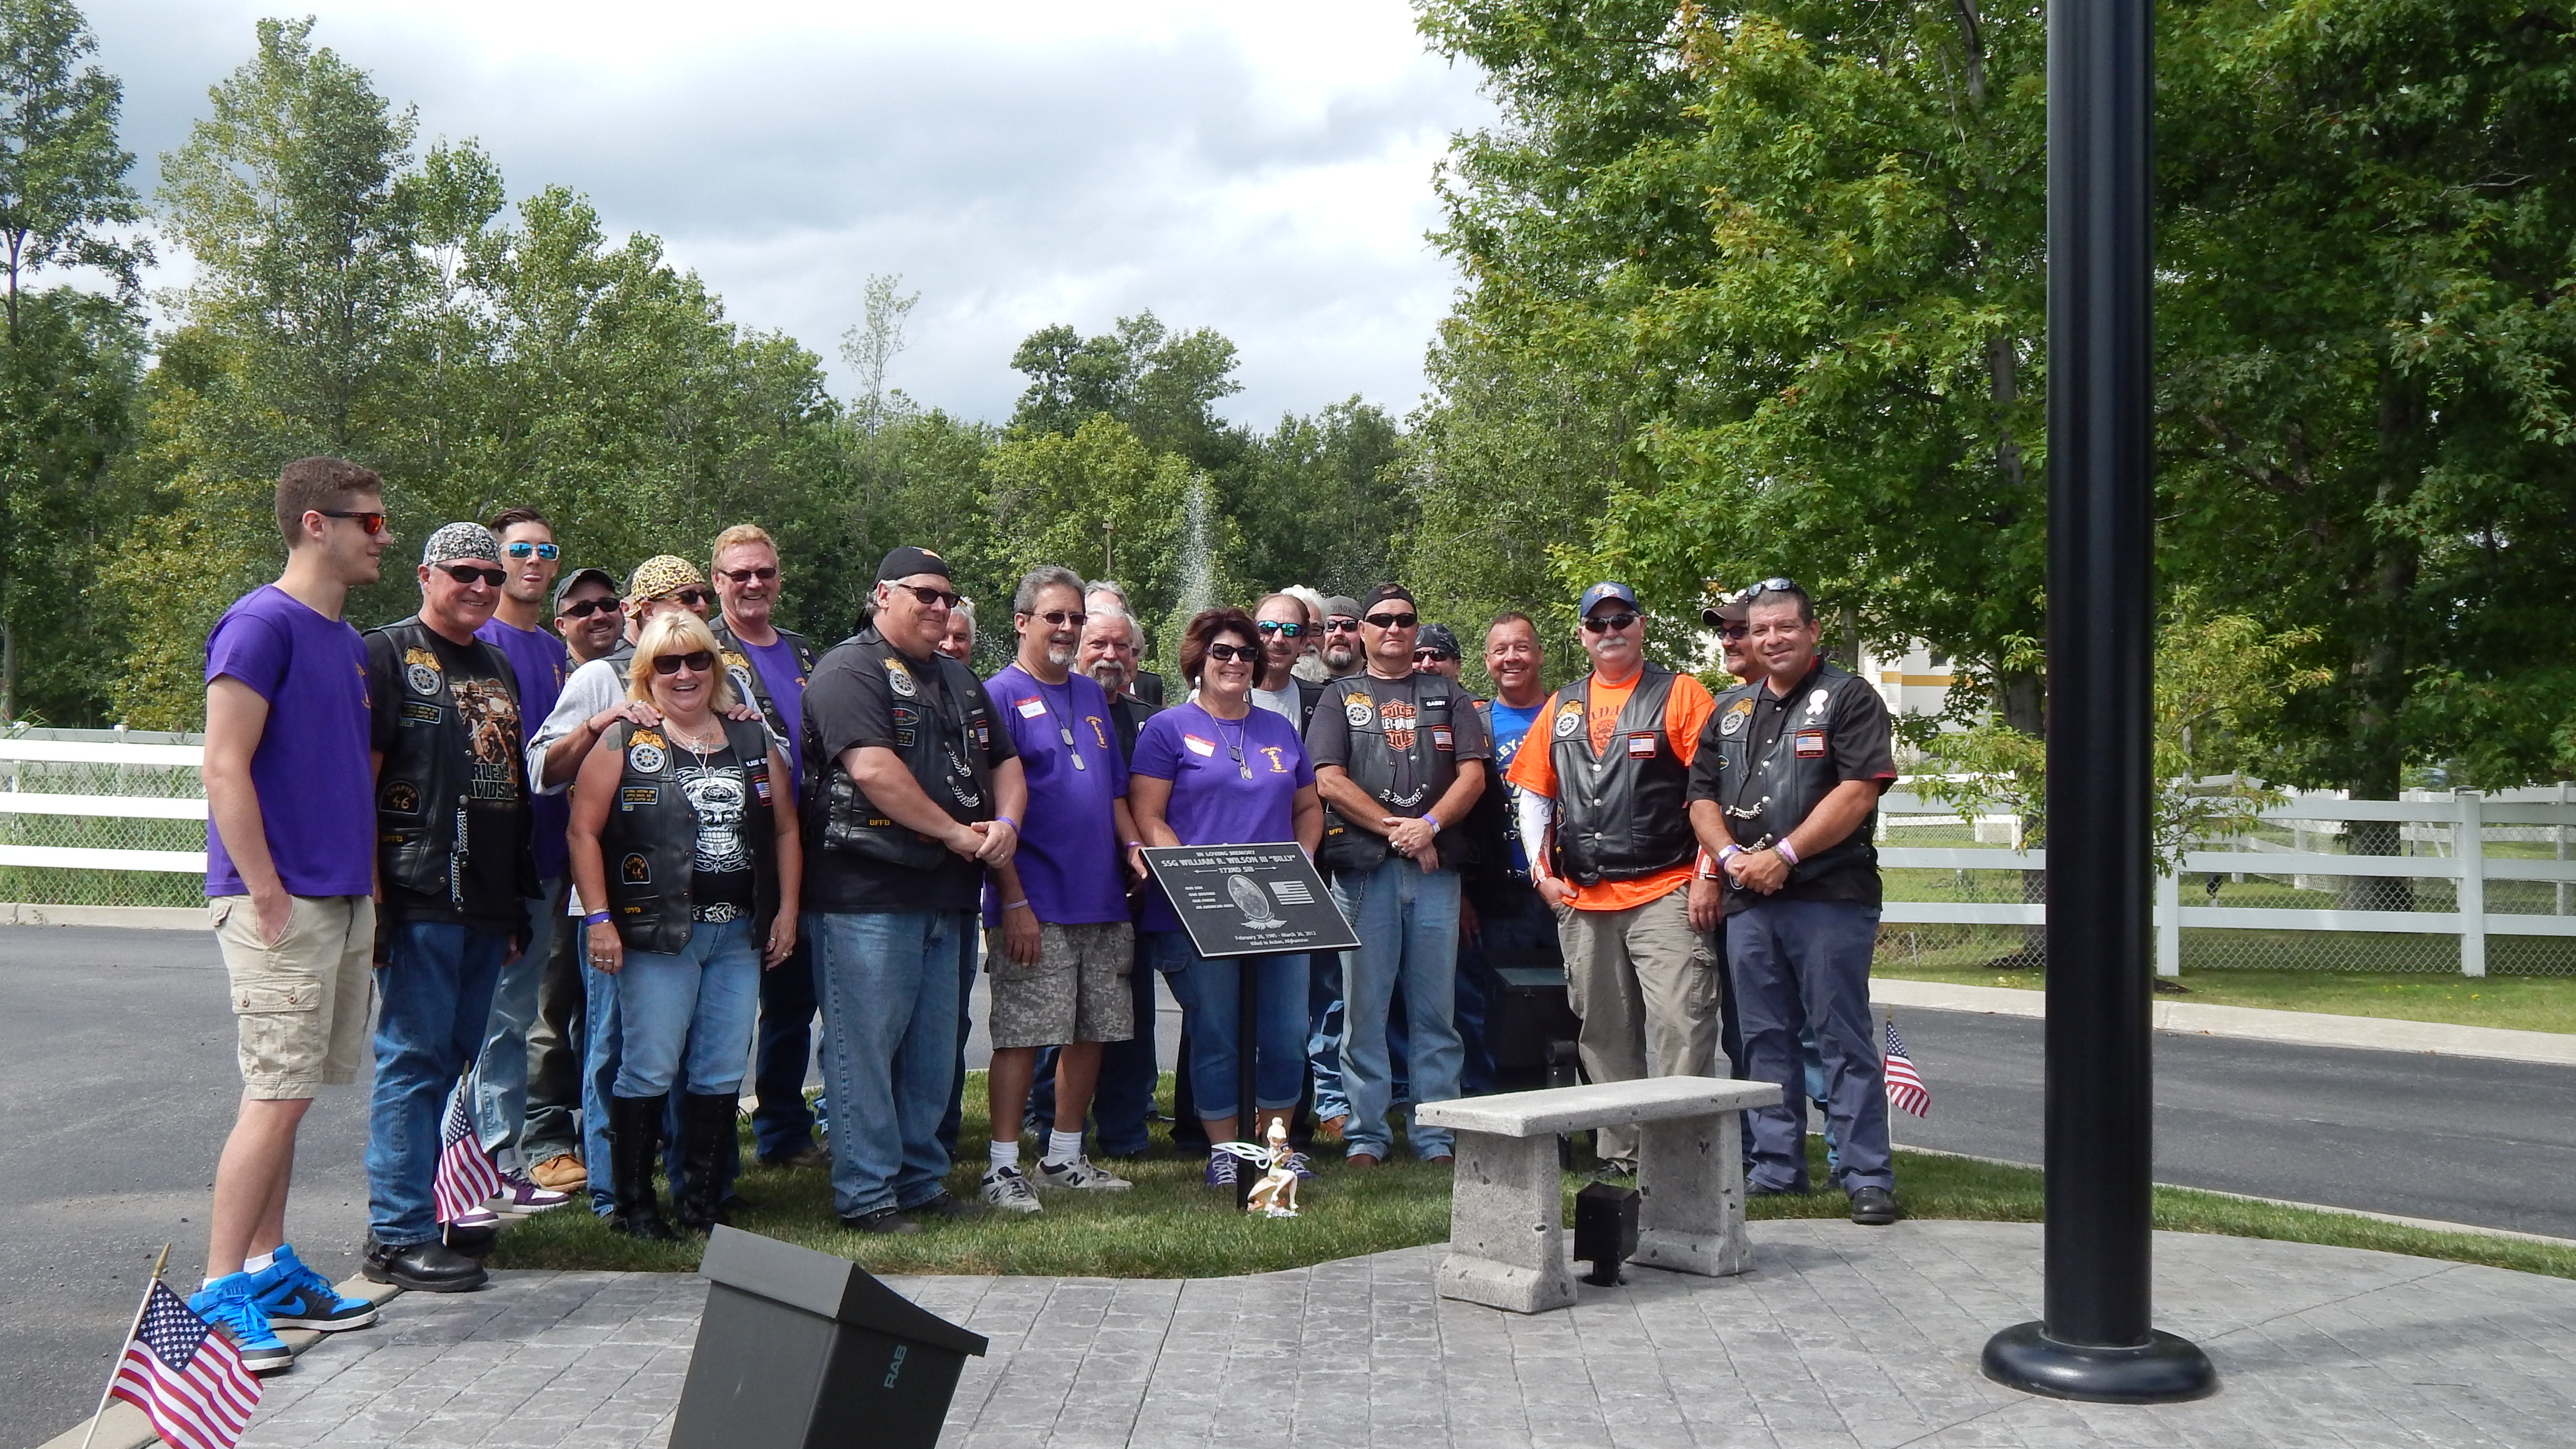 The Wilson Family & the Teamster Family